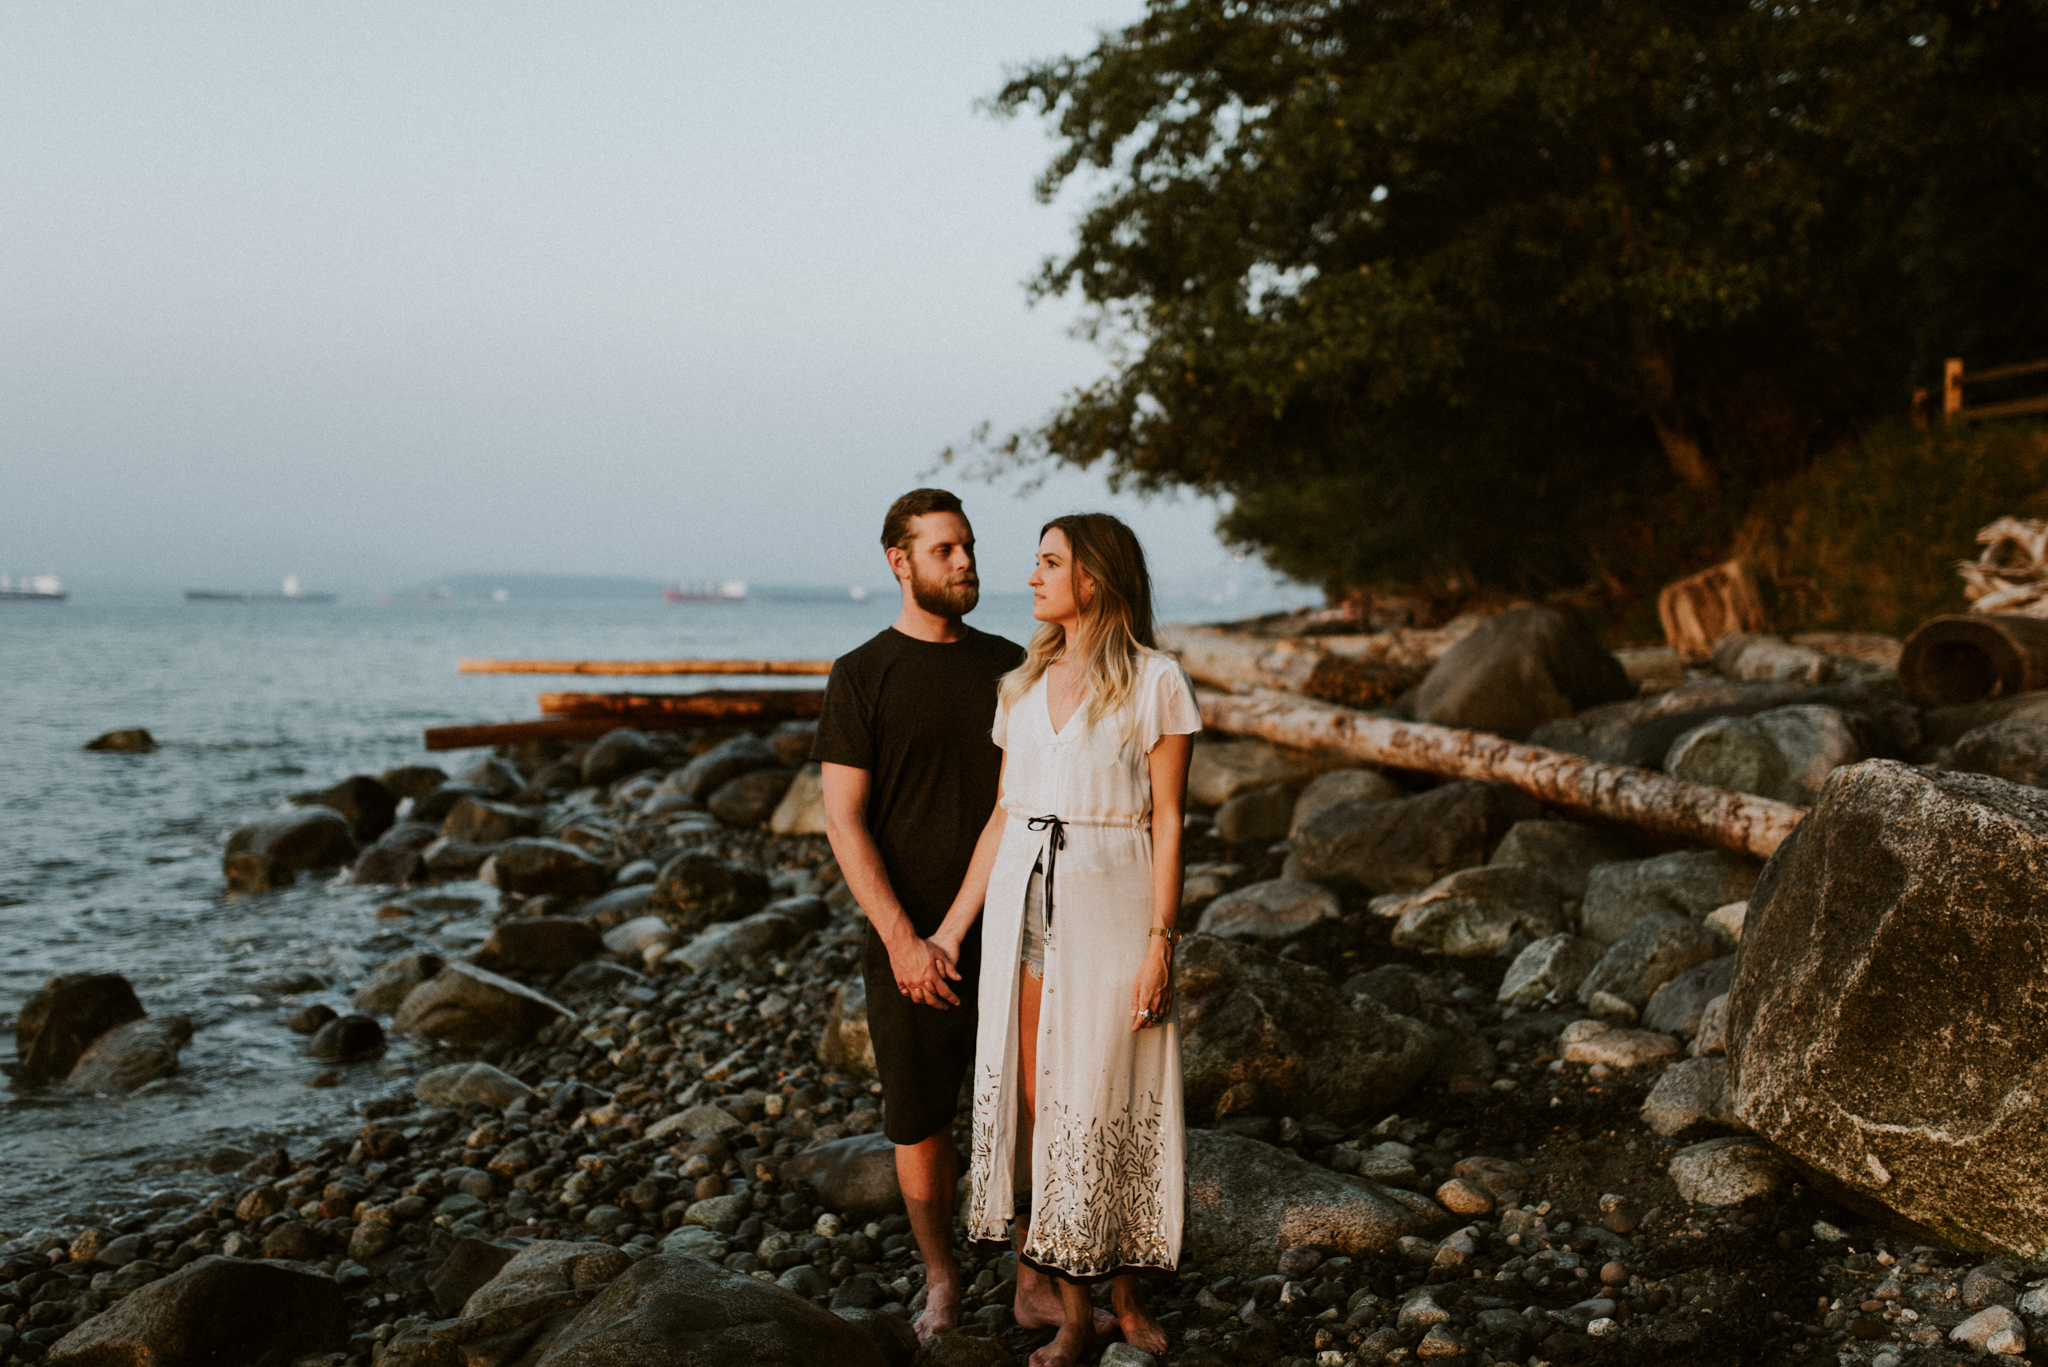 067_StacieCarrPhotography_vancouver-elopement-photographer-adventurous-engagement-smoke-bomb-beach.jpg